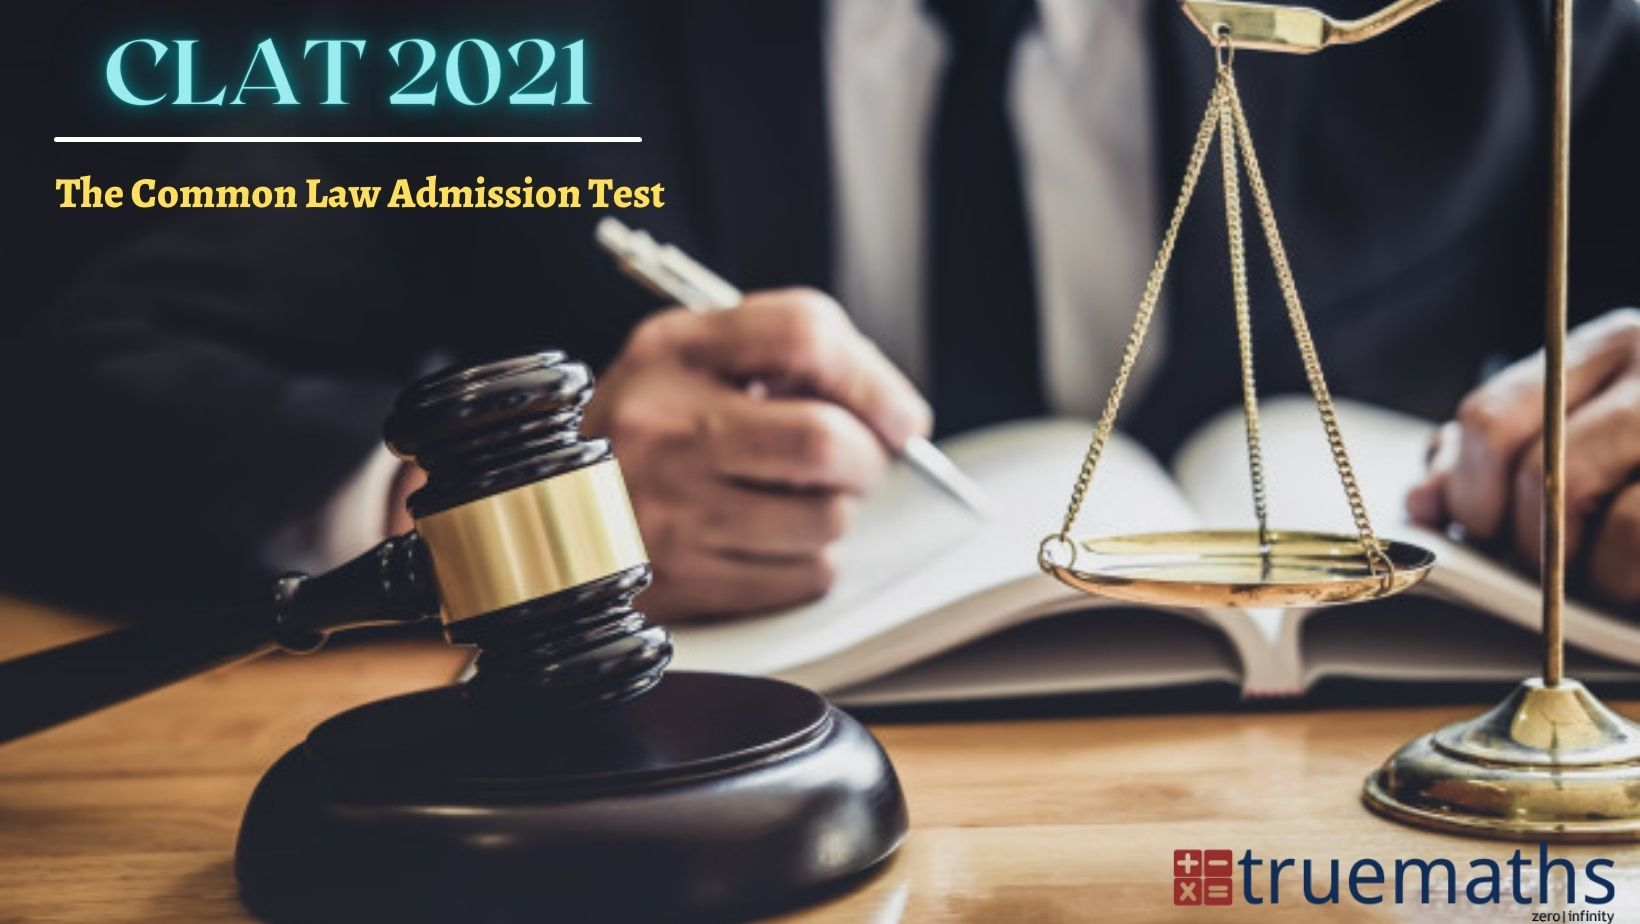 Common Law Admission Test (CLAT) 2021